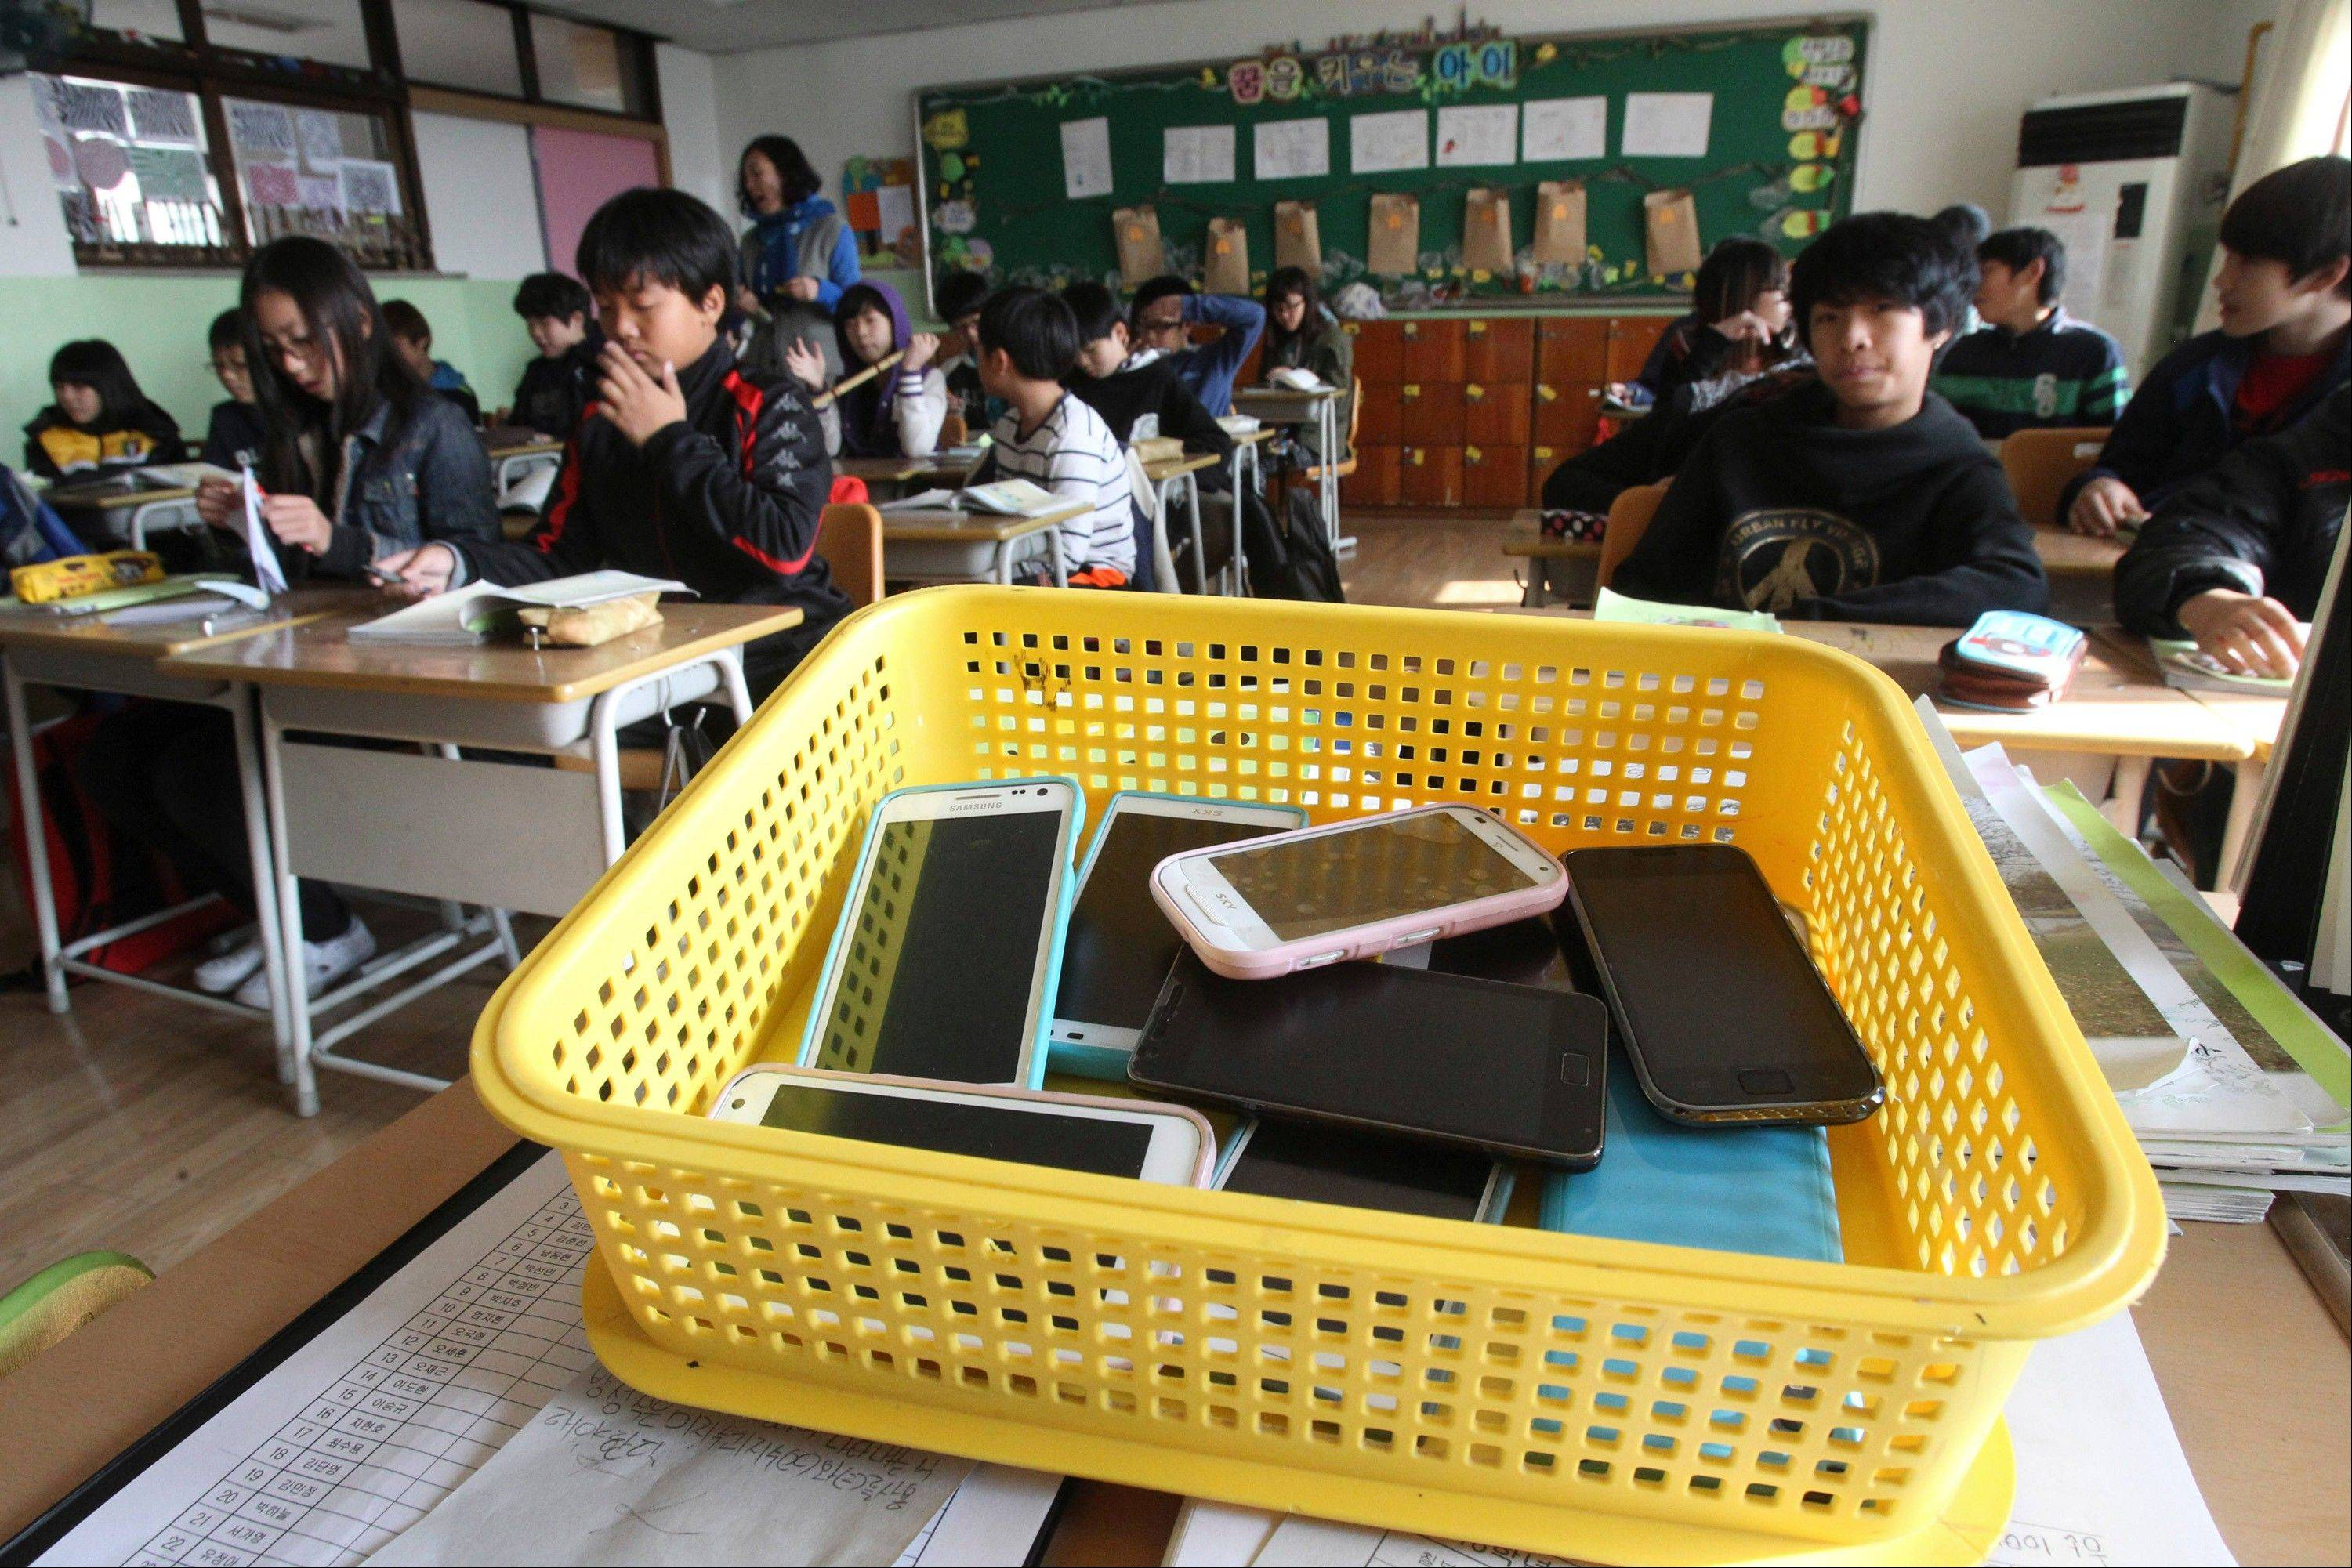 Smartphones collected from students are placed in a plastic basket during a class at Chilbo elementary school in Suwon, South Korea. Students agreed to hand in their smartphones when they arrive at school in the morning and get them back when they leave for home after classes.